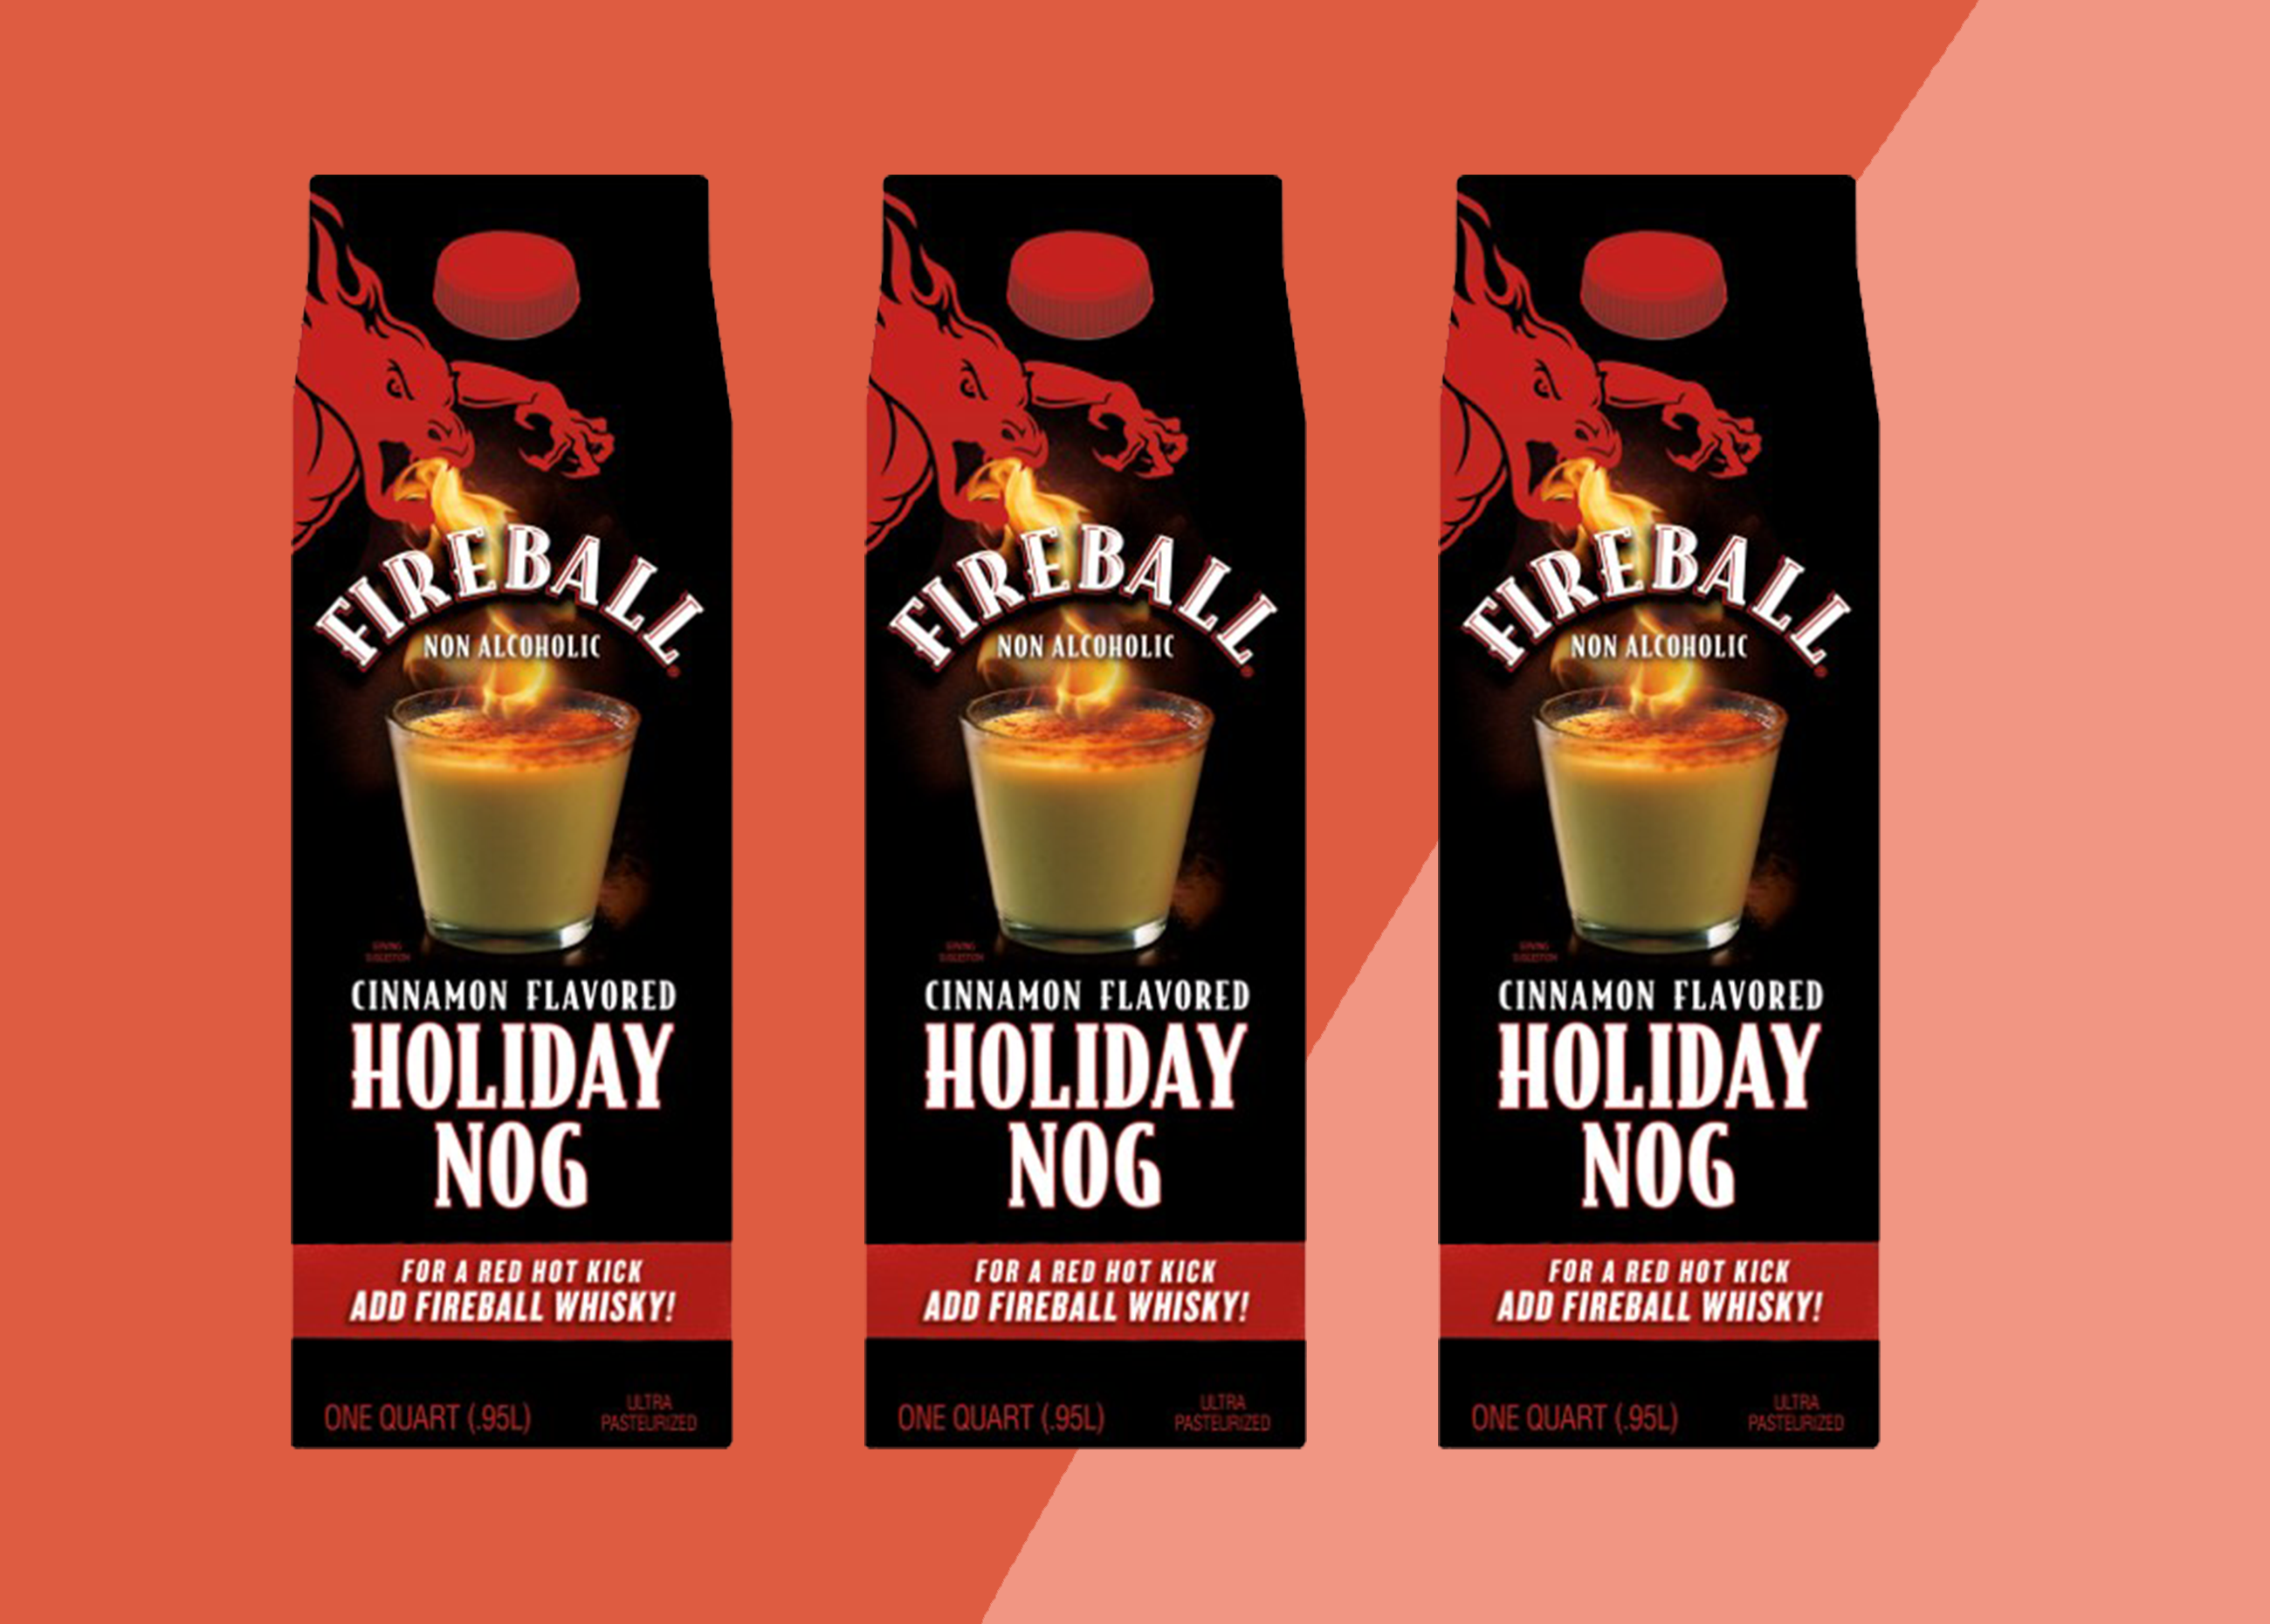 Fireball Holiday Nog